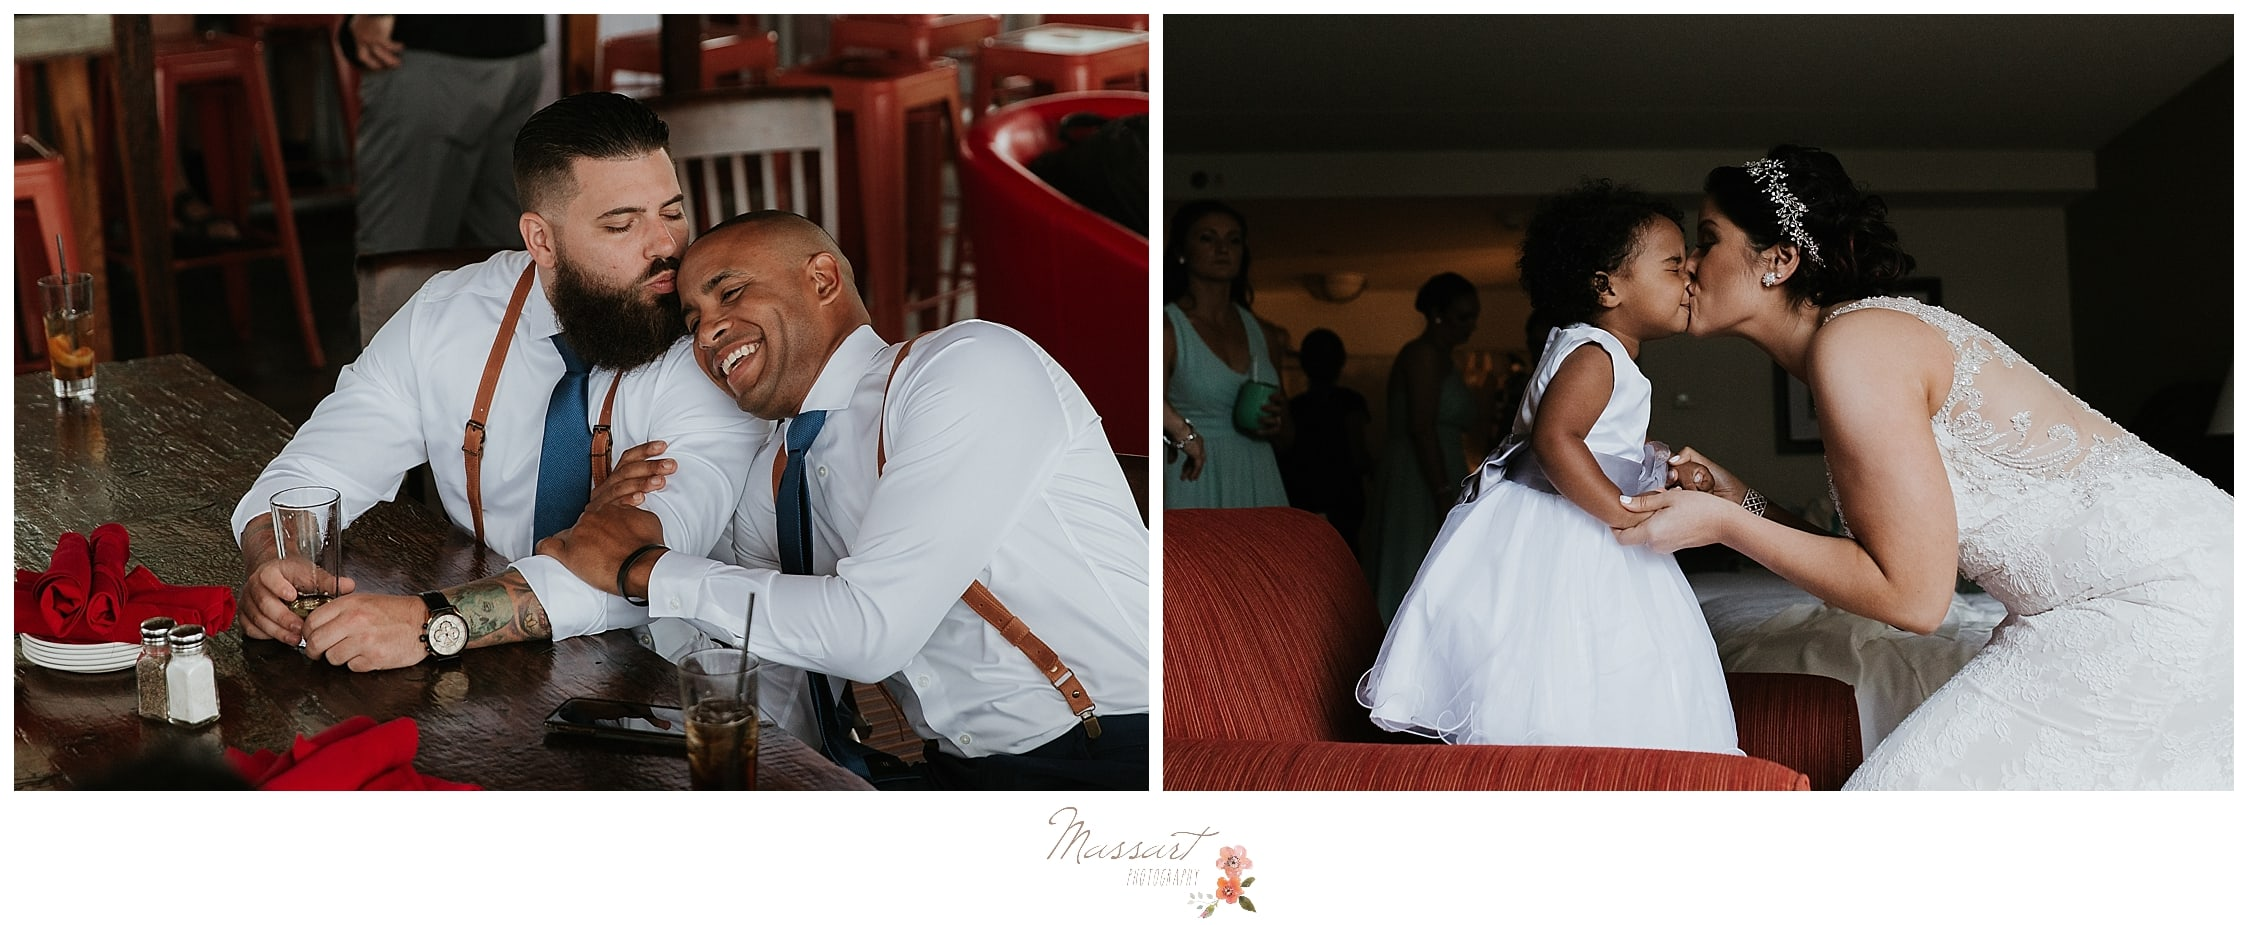 Groomsmen being silly while getting ready and bride kissing the flower girl at Harbor Lights in RI photographed by Massart Photography who specializes in RI weddings.